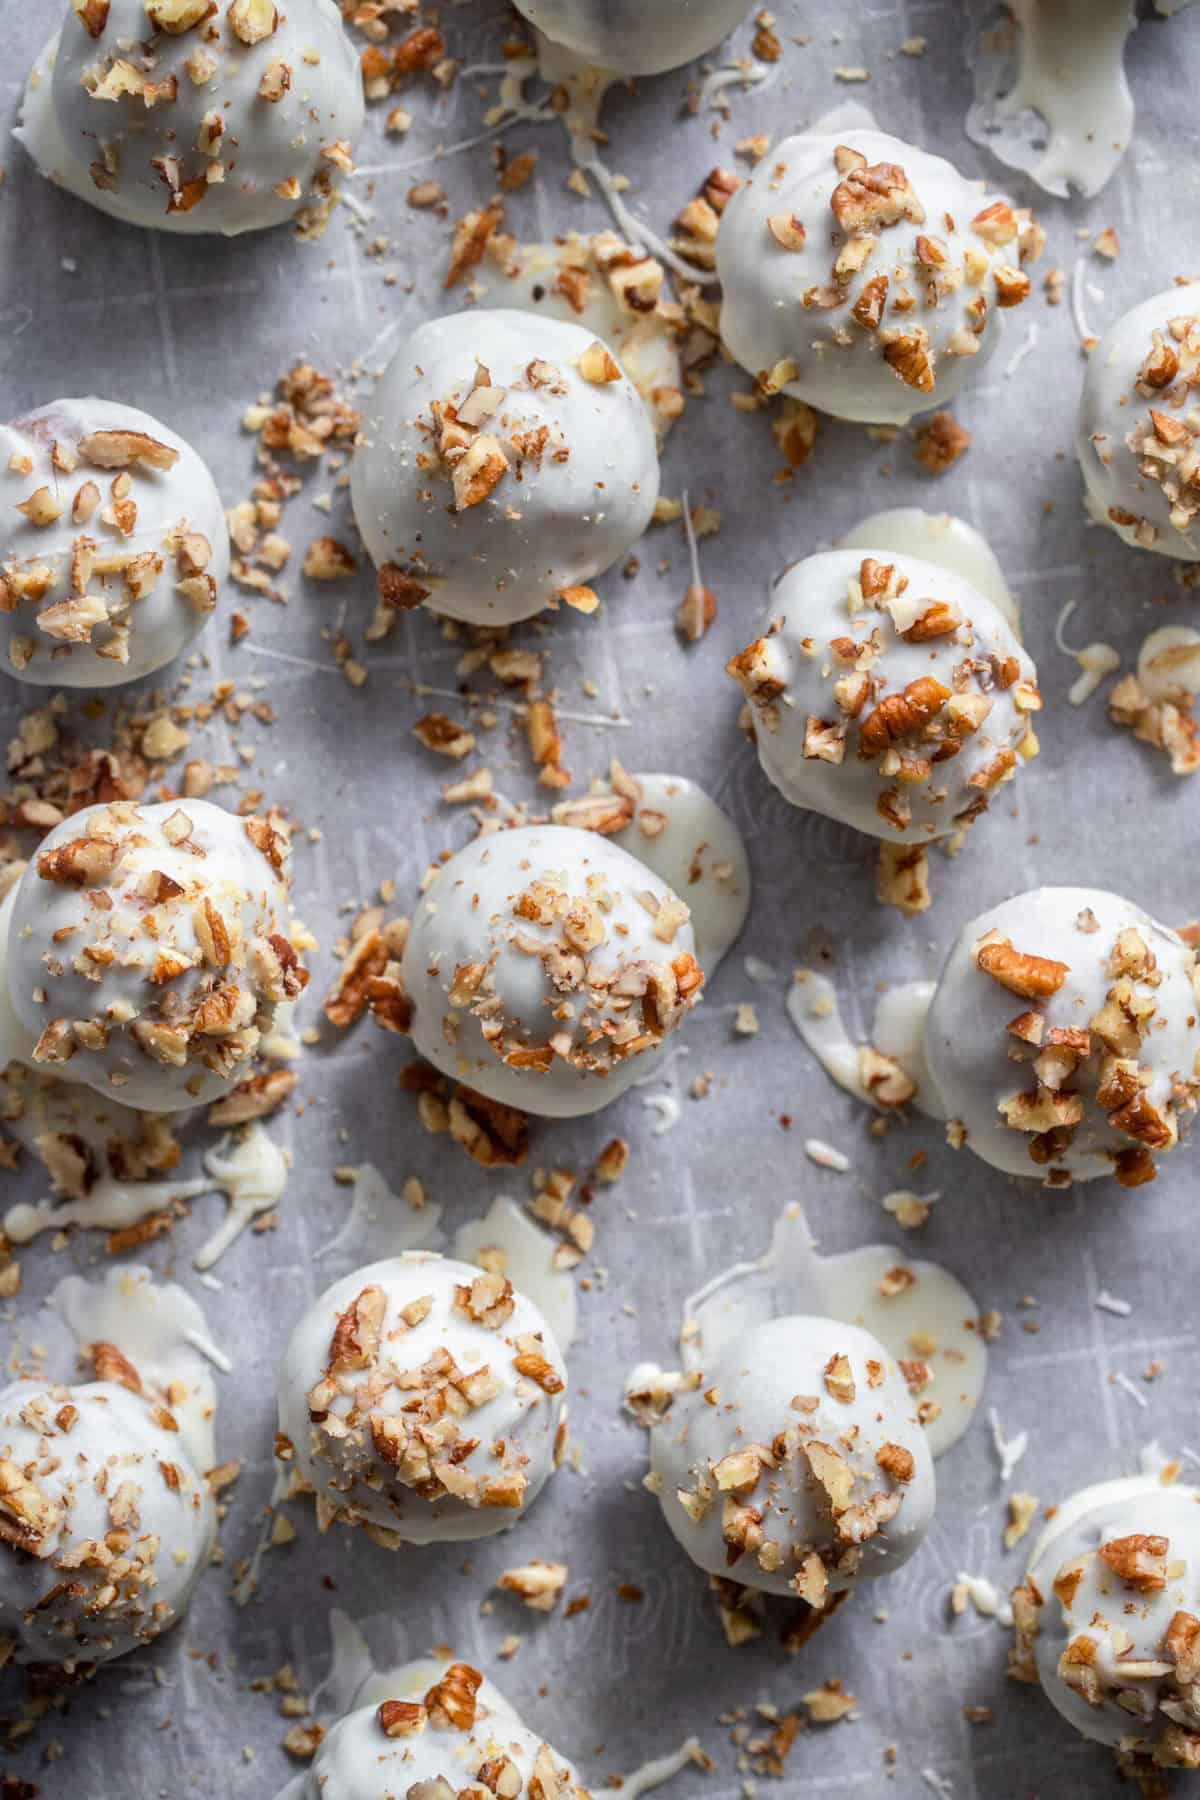 Carrot cake truffle recipe close up with sprinkles